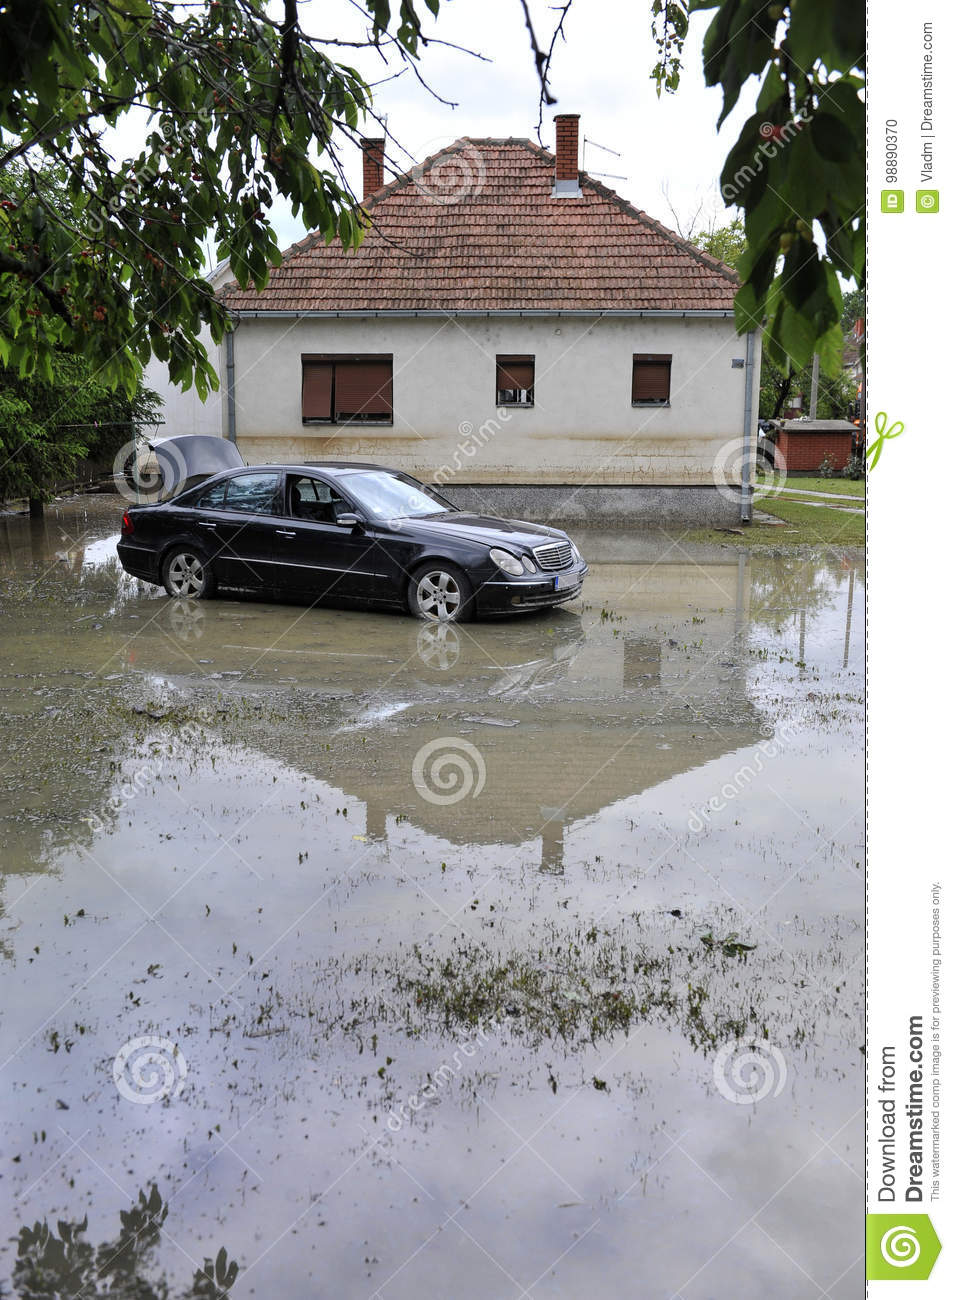 The consequences of flooding, car in front of flooded house.